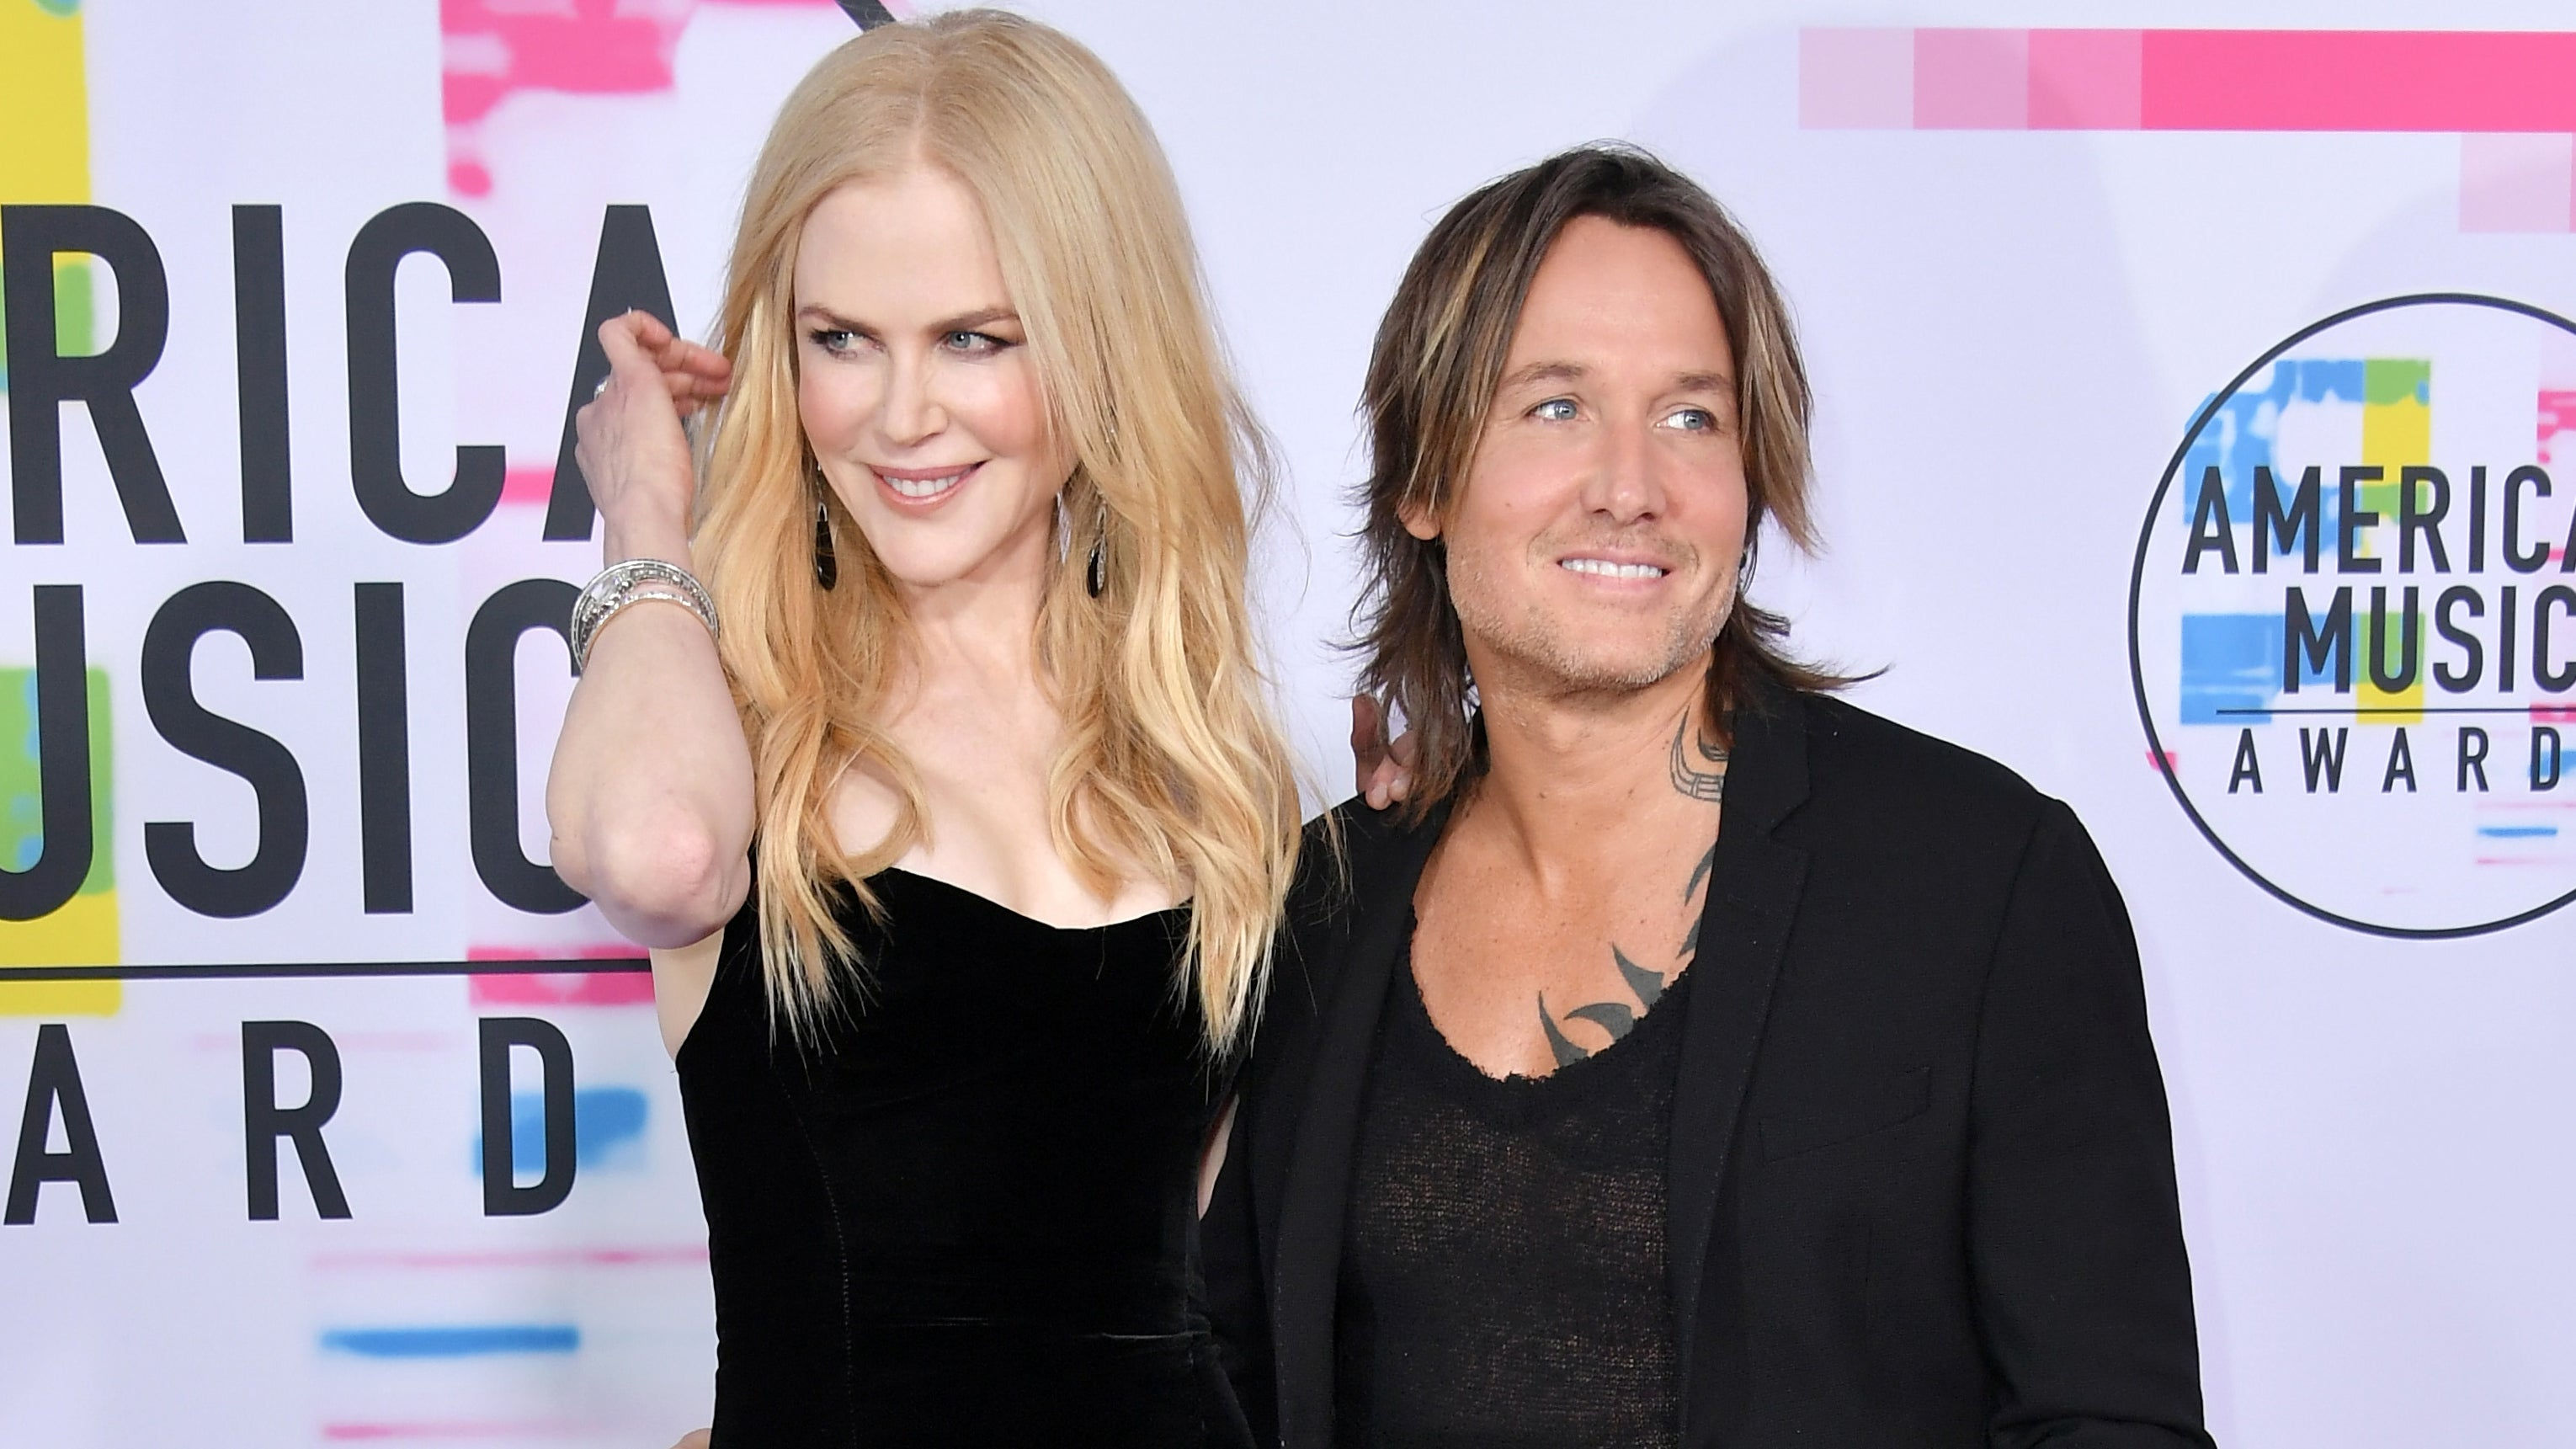 Relationship Advice From Keith Urban And Nicole Kidman: Nicole Kidman Says Keith Urban Can't Handle Her Intense